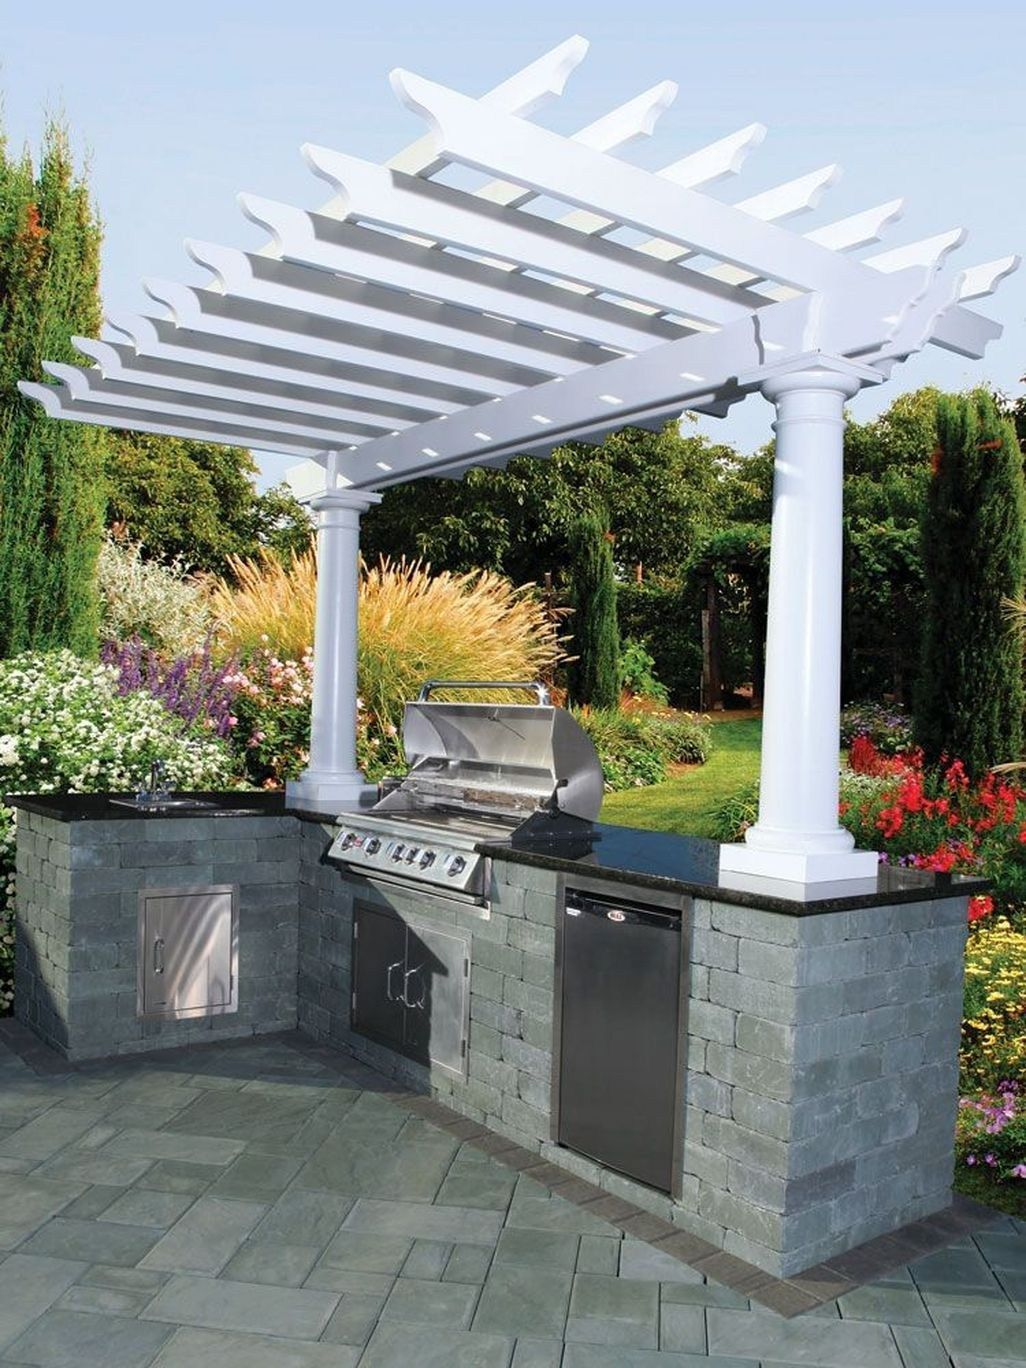 Awesome outdoor kitchen design ideas you will totally love